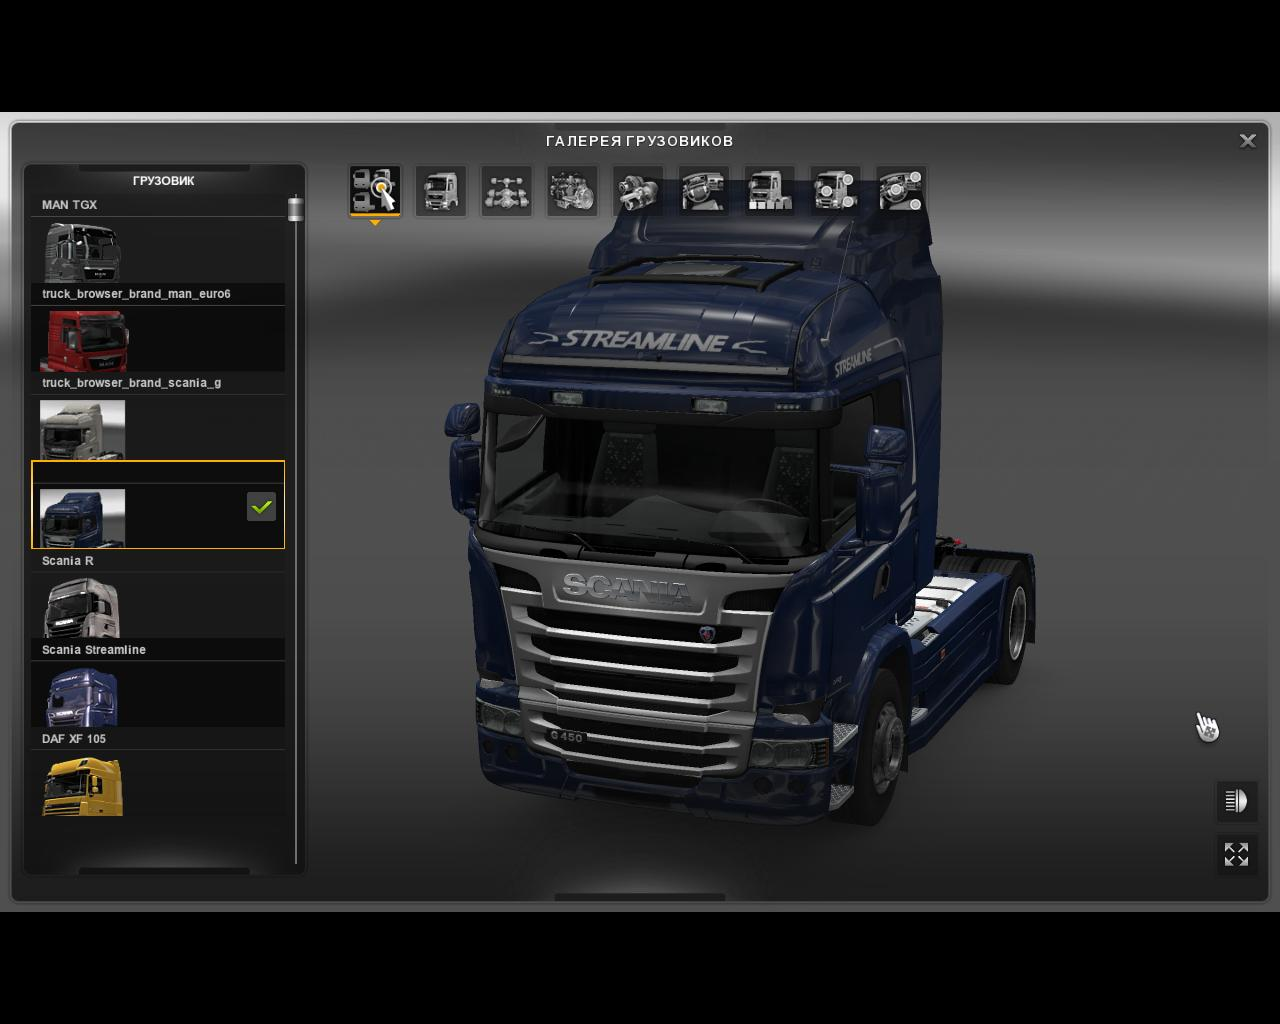 scania-r-and-g-1-20-x_1